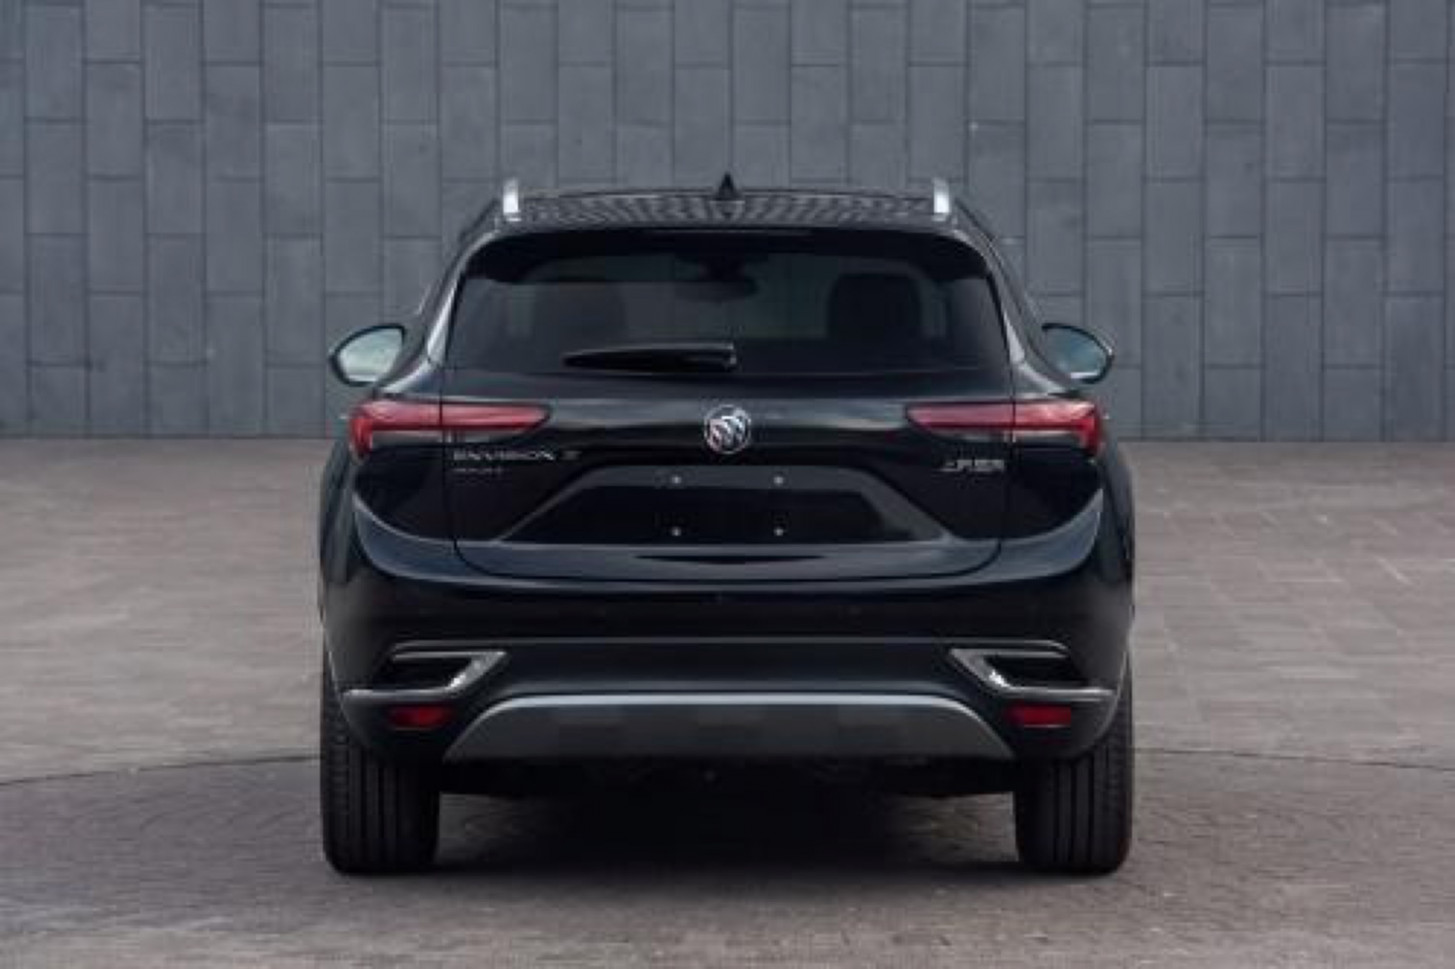 Redesign and Concept 2022 Buick Envision